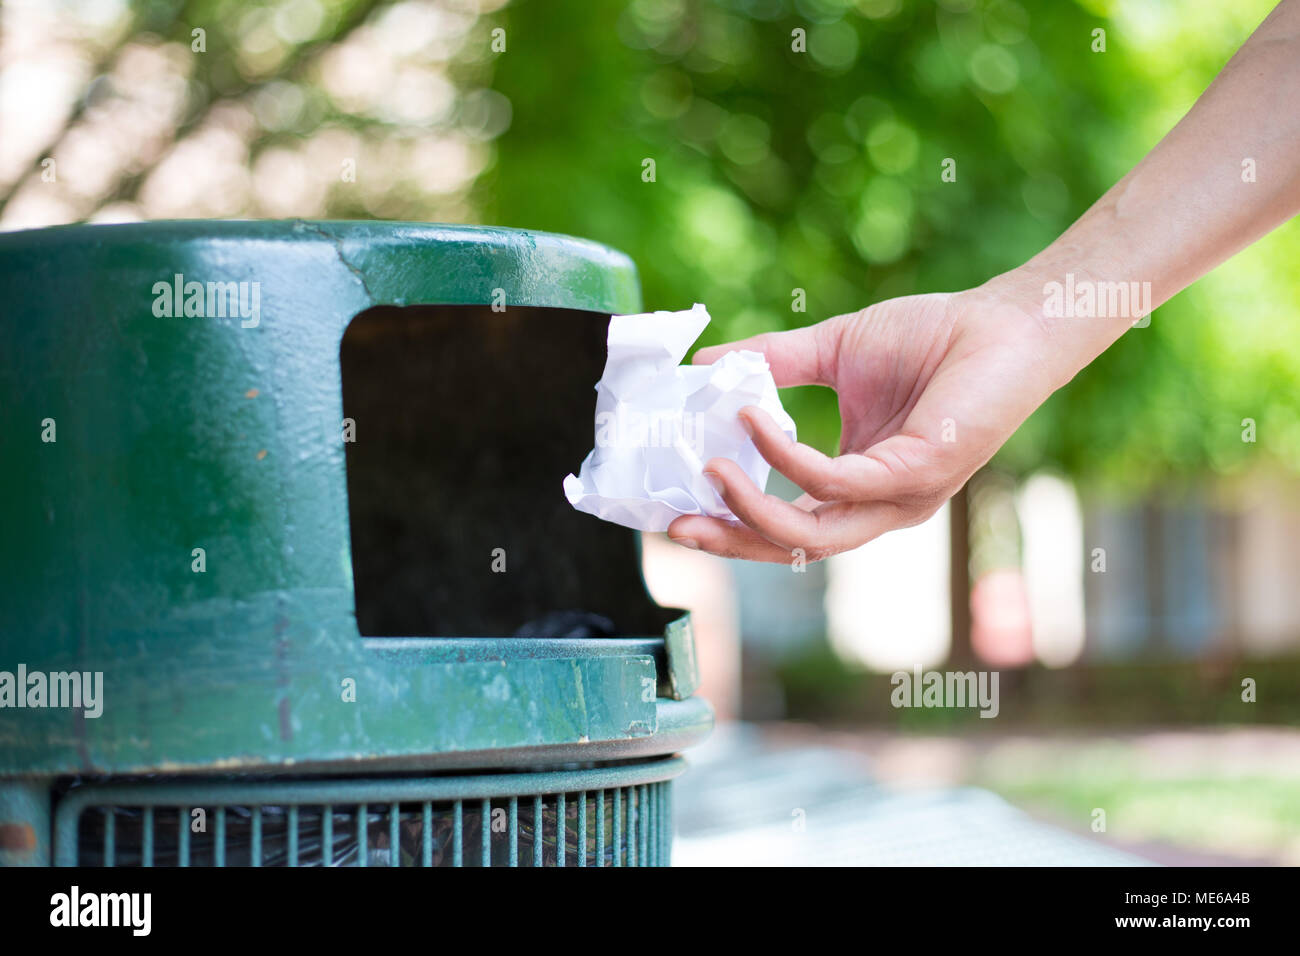 Closeup cropped portrait of someone tossing crumpled piece of paper in trash can, isolated outdoors green trees background - Stock Image